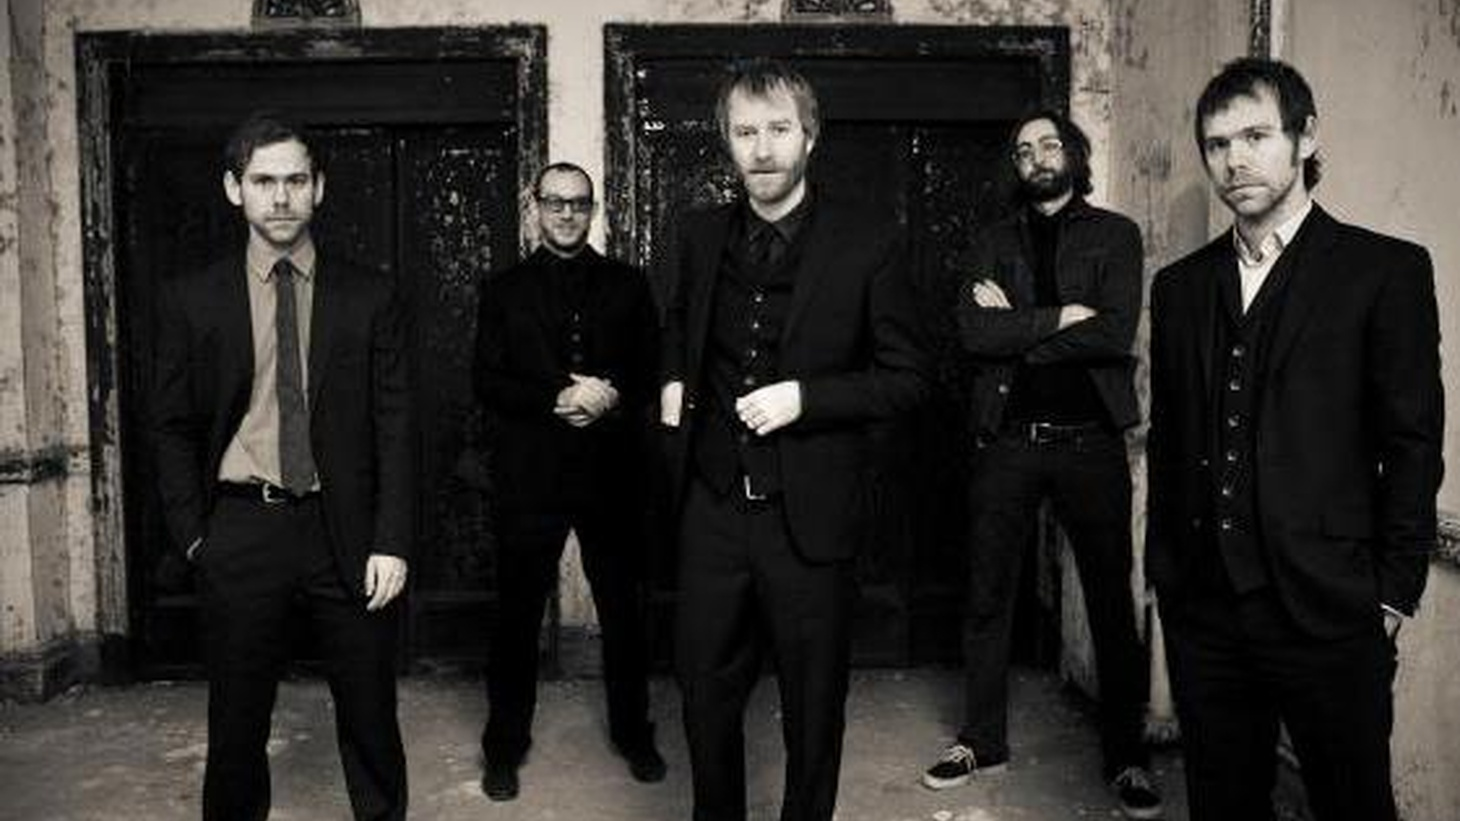 2020 marks the 10th anniversary of The National's celebrated breakthrough album High Violet. In 2011, the 5-piece band, along with a horn section, performed a staggering and ornate session for KCRW.